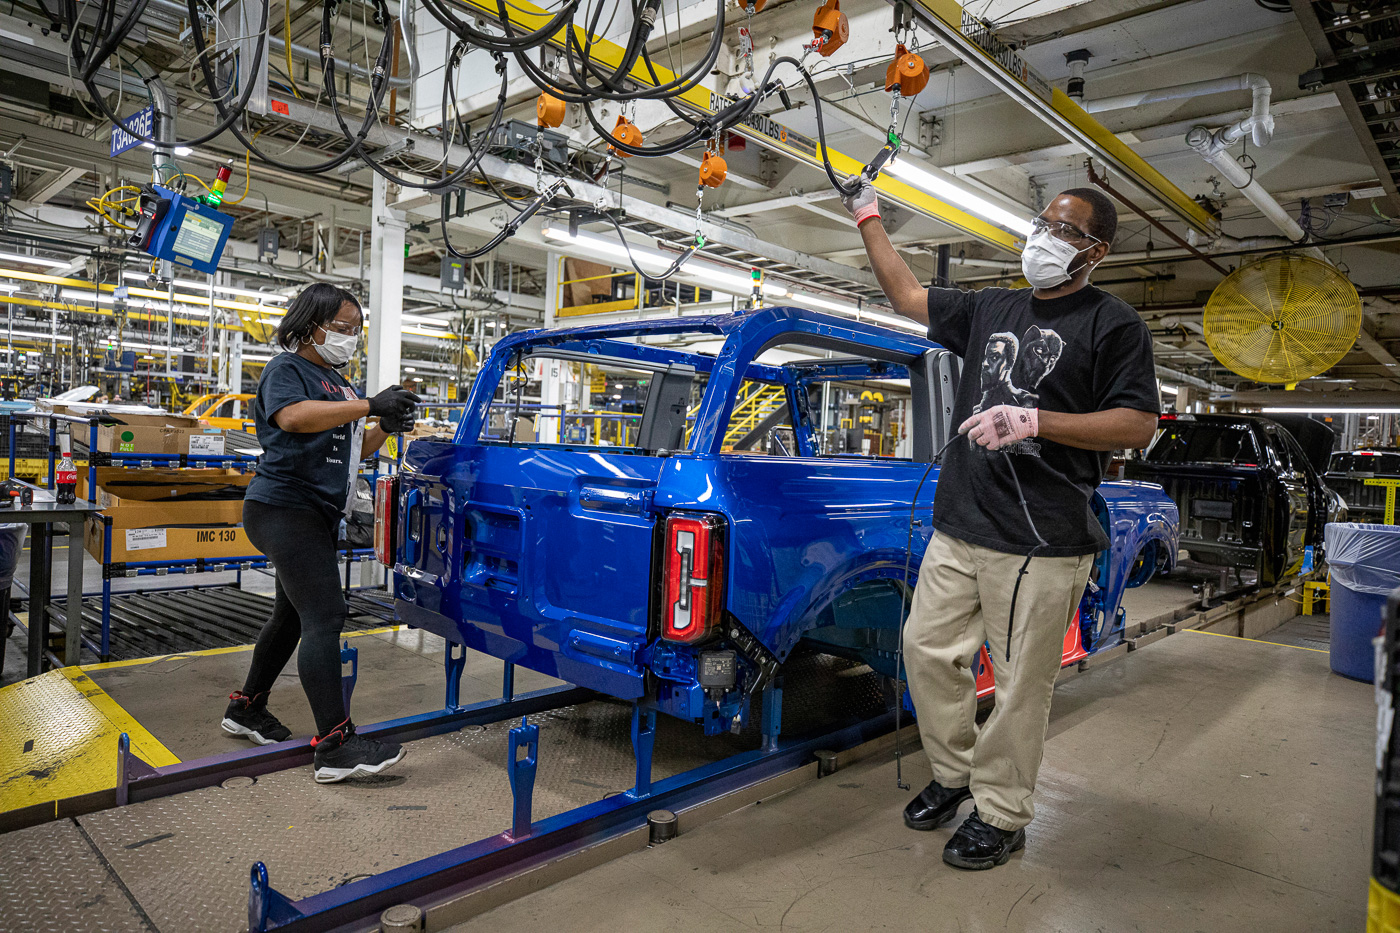 2021-bronco-production-michigan-assembly-plant-5.jpg